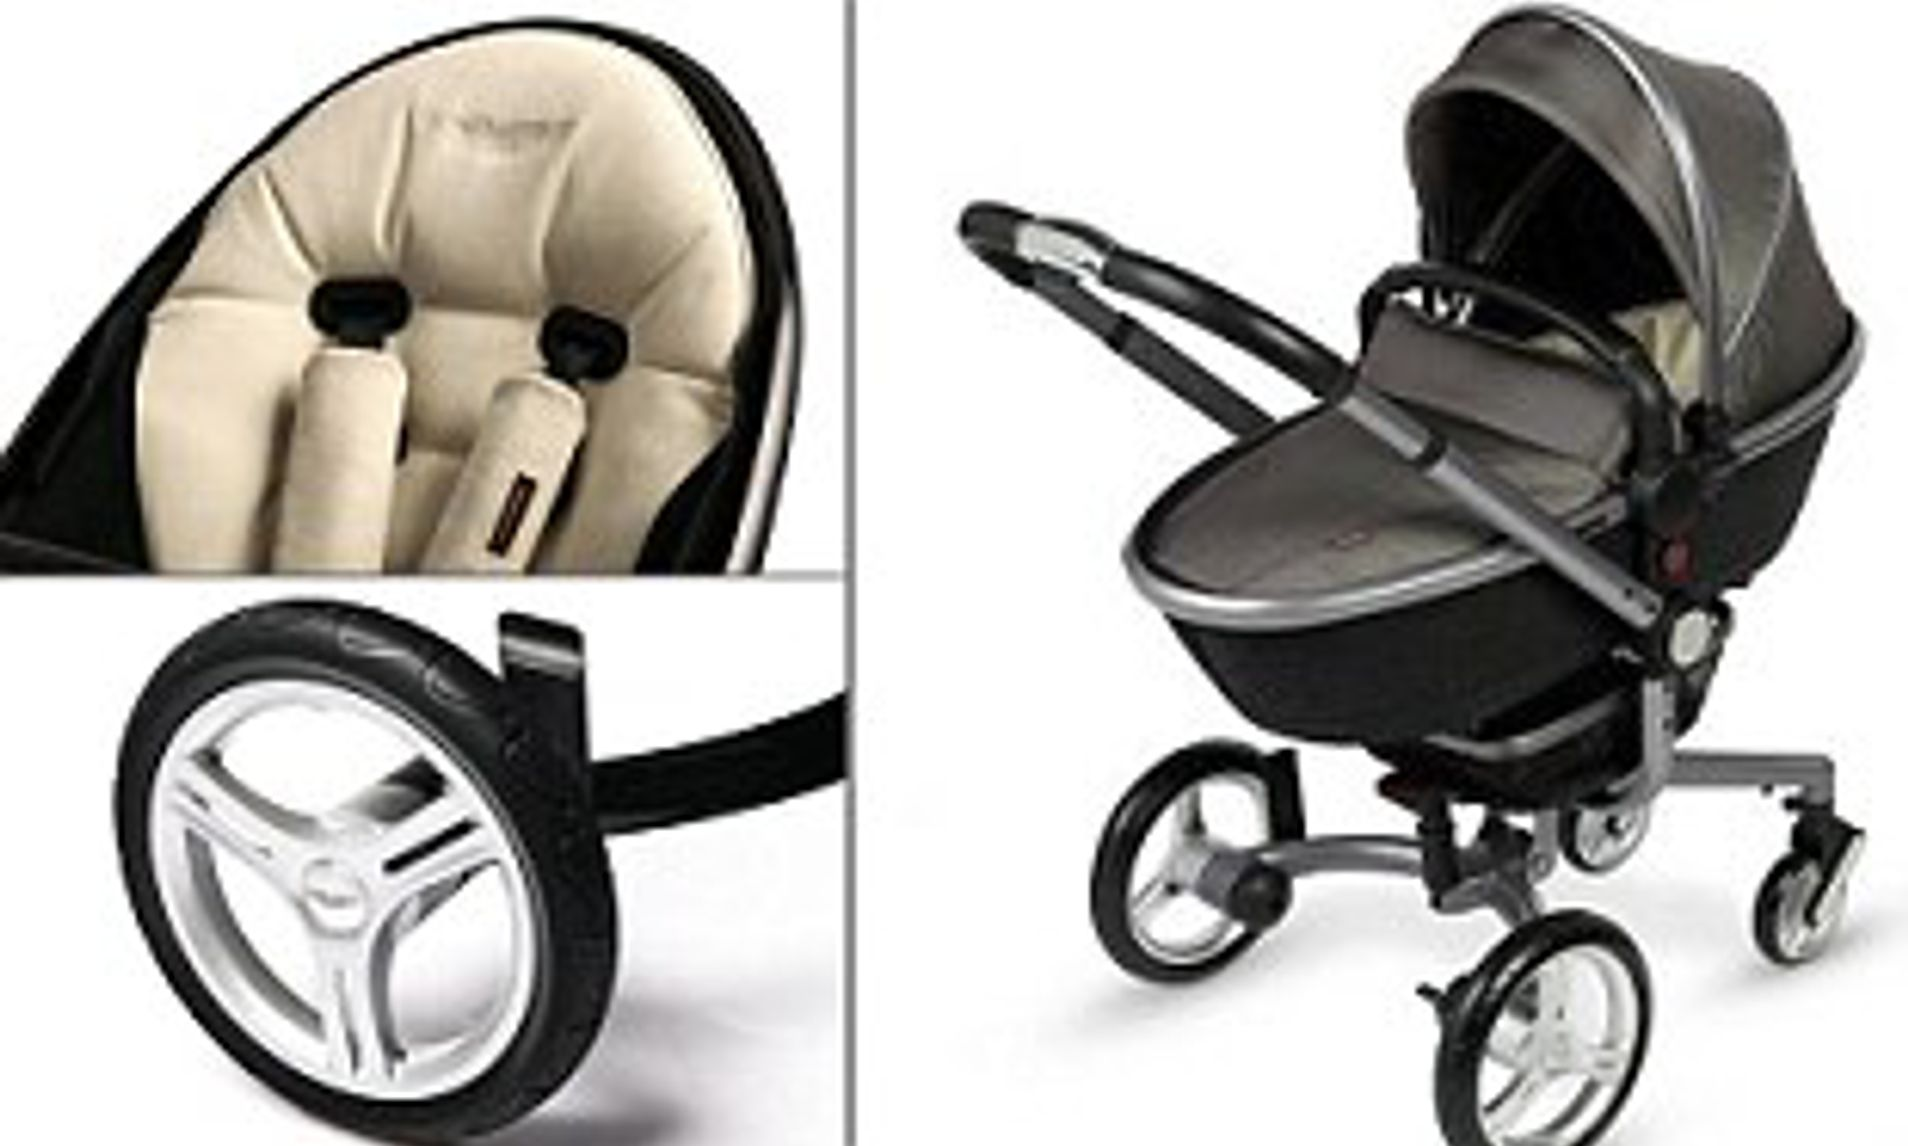 Travel Trio Musical Pram Tie Aston Martin S 2 000 Silver Cross Pram Is The New Way For A